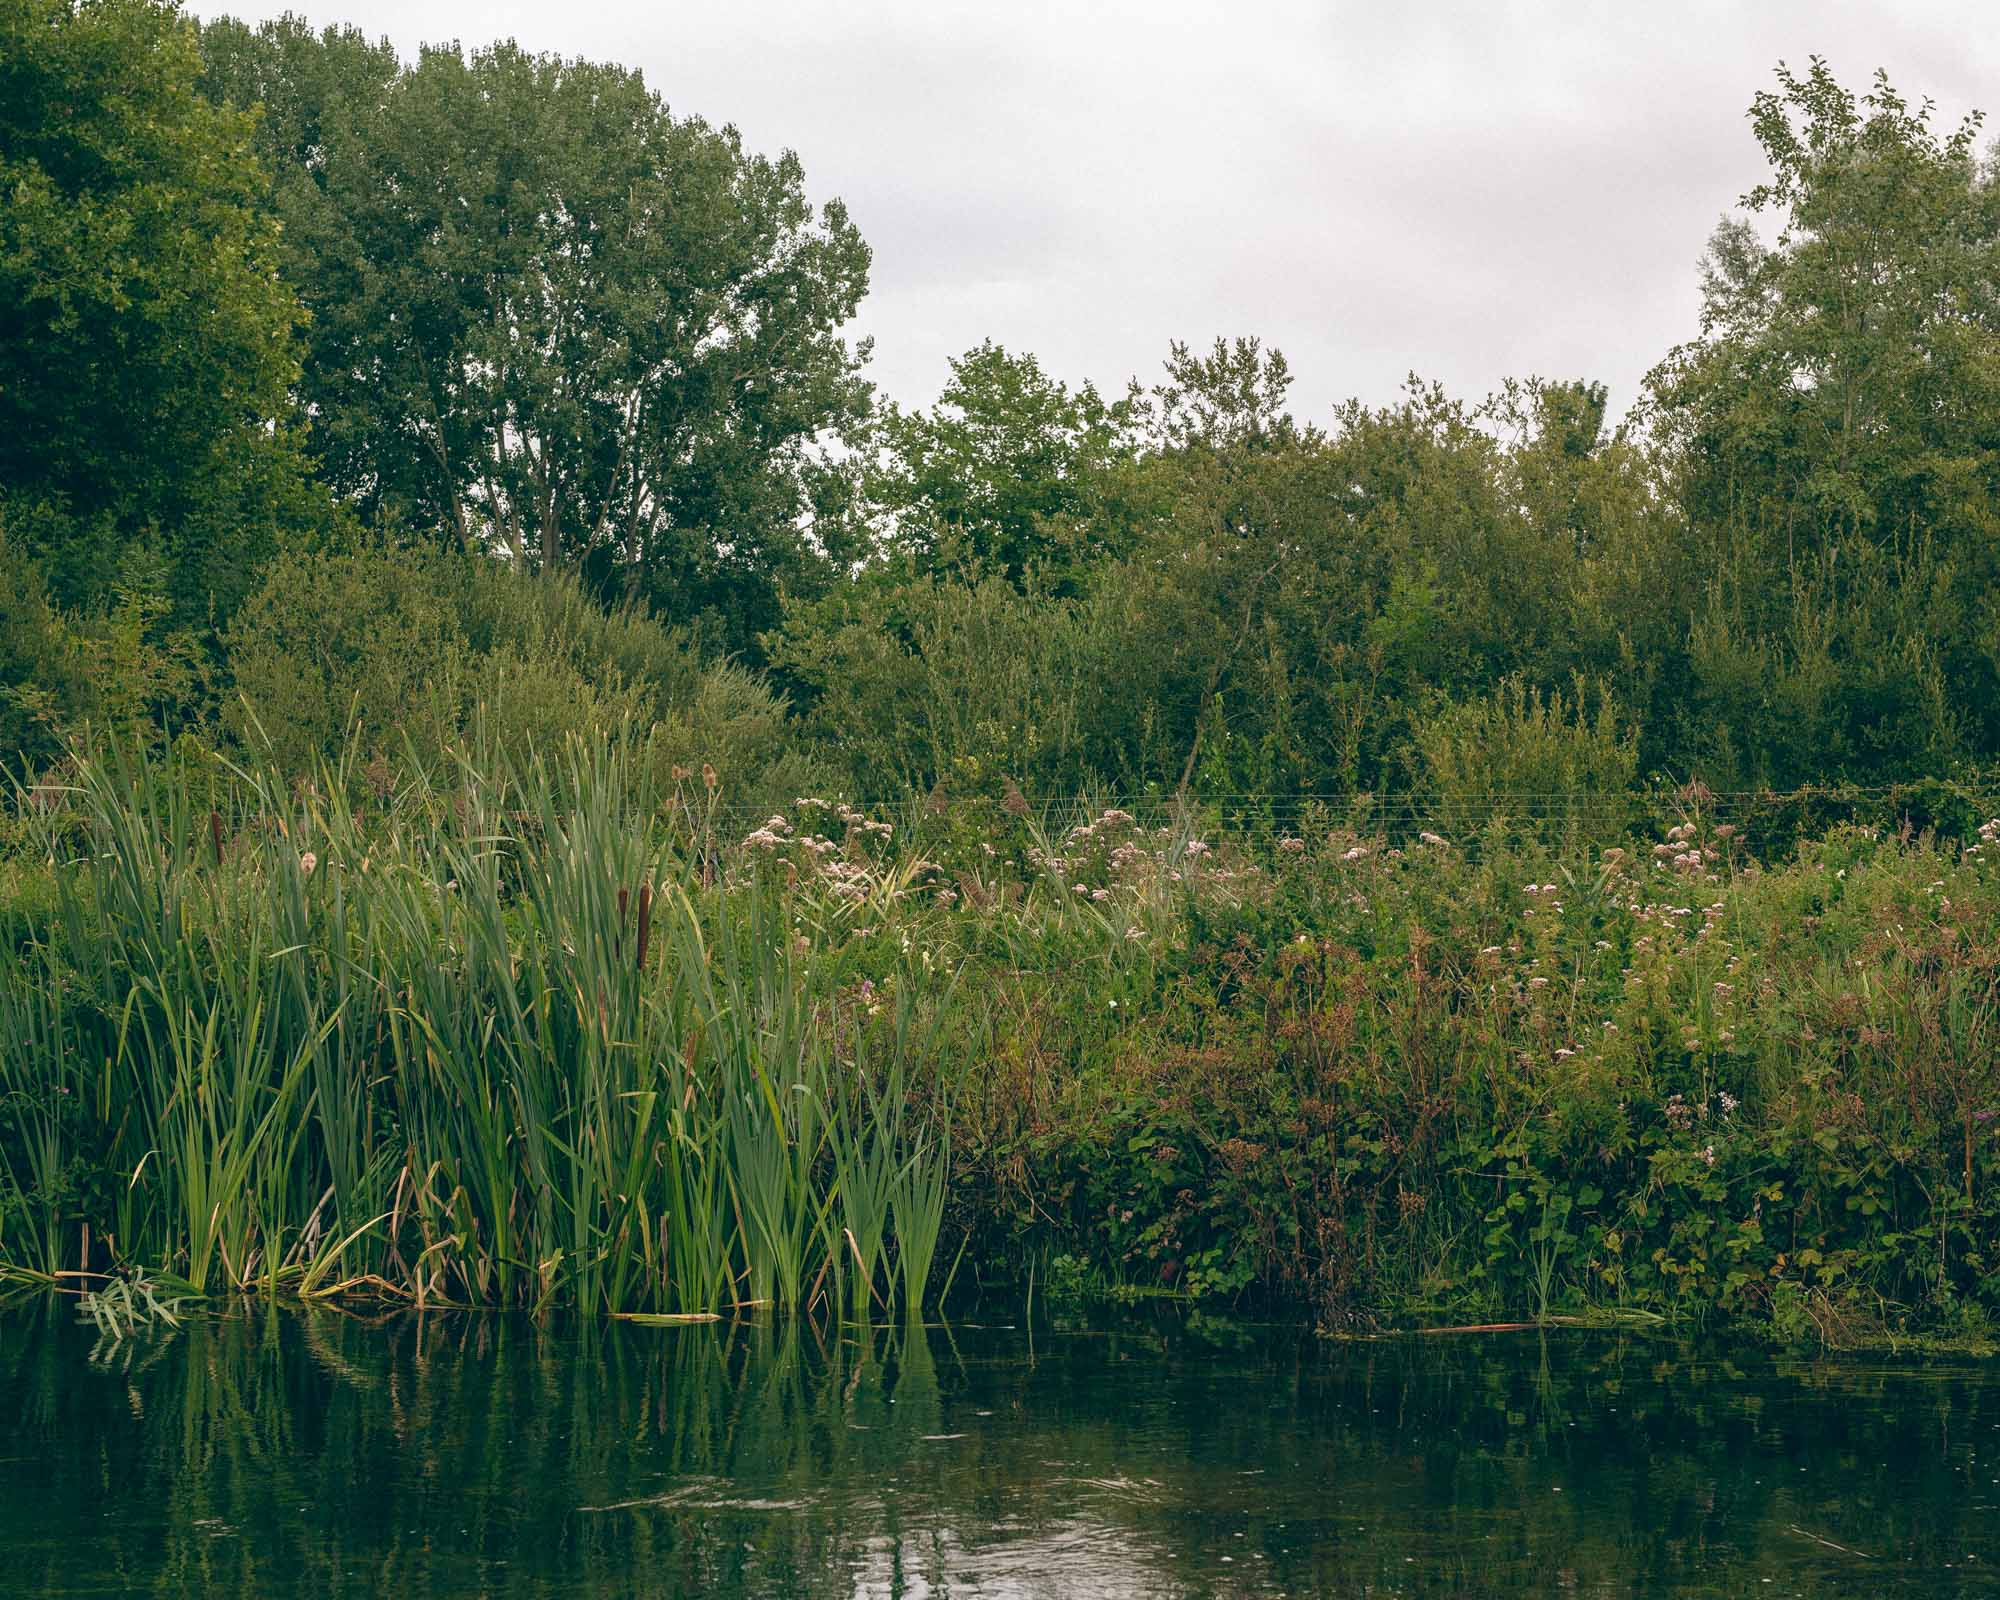 Christopher Lanaway - This Vale of Itchen the south west collective of photography